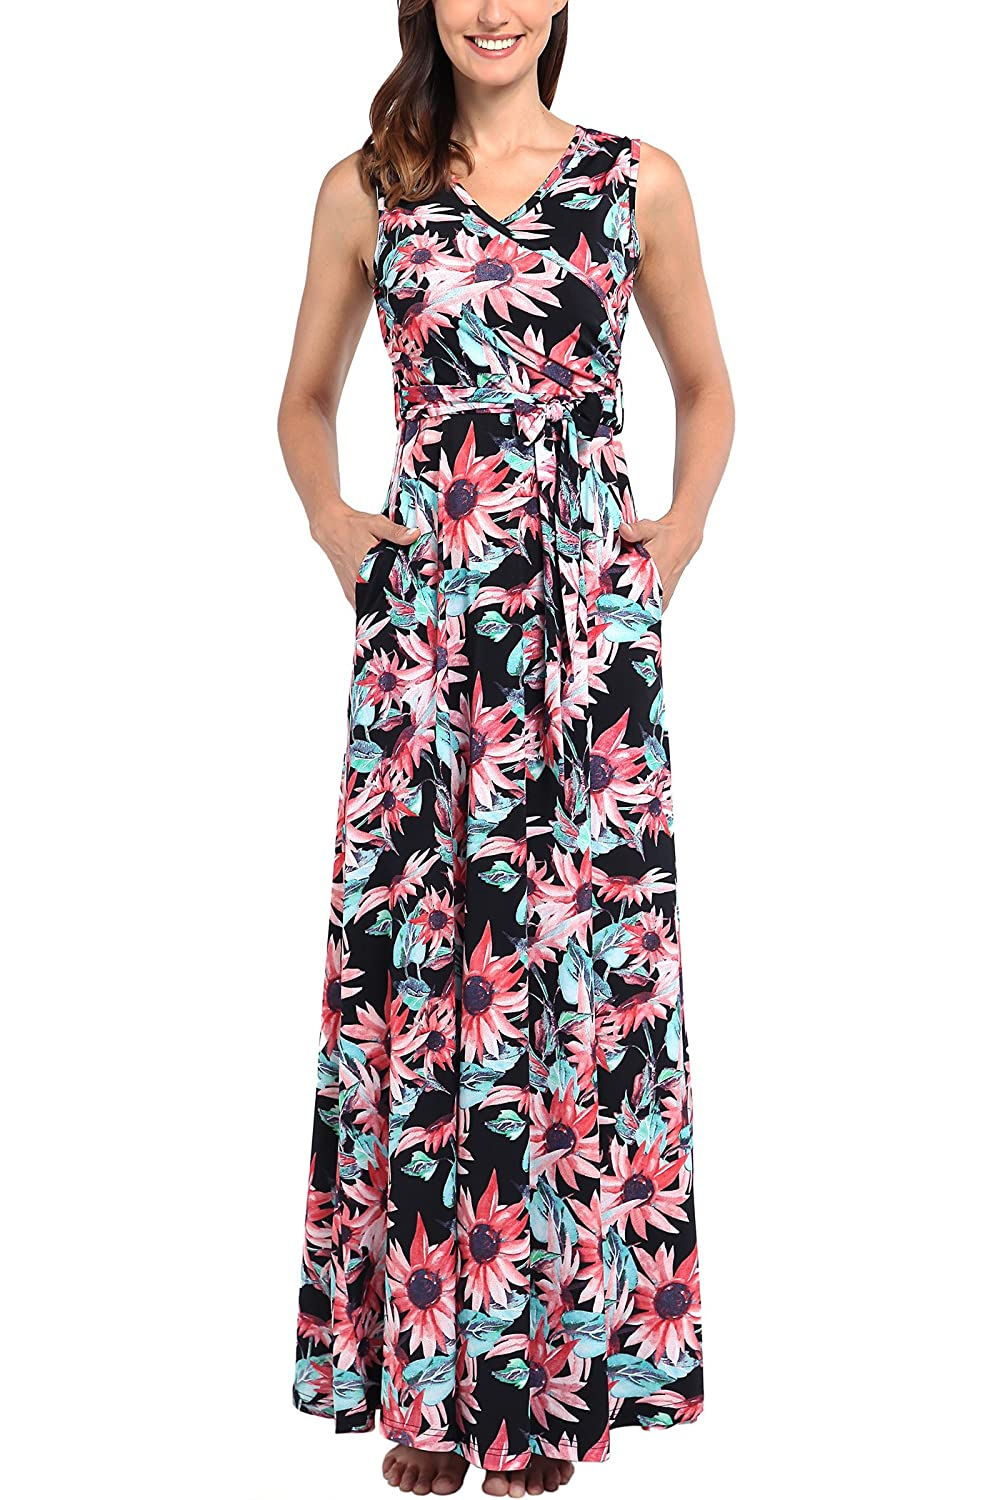 b417ba6a8156 Comila Women s Summer V Neck Floral Maxi Dress Casual Long Dresses with  Pockets at Amazon Women s Clothing store